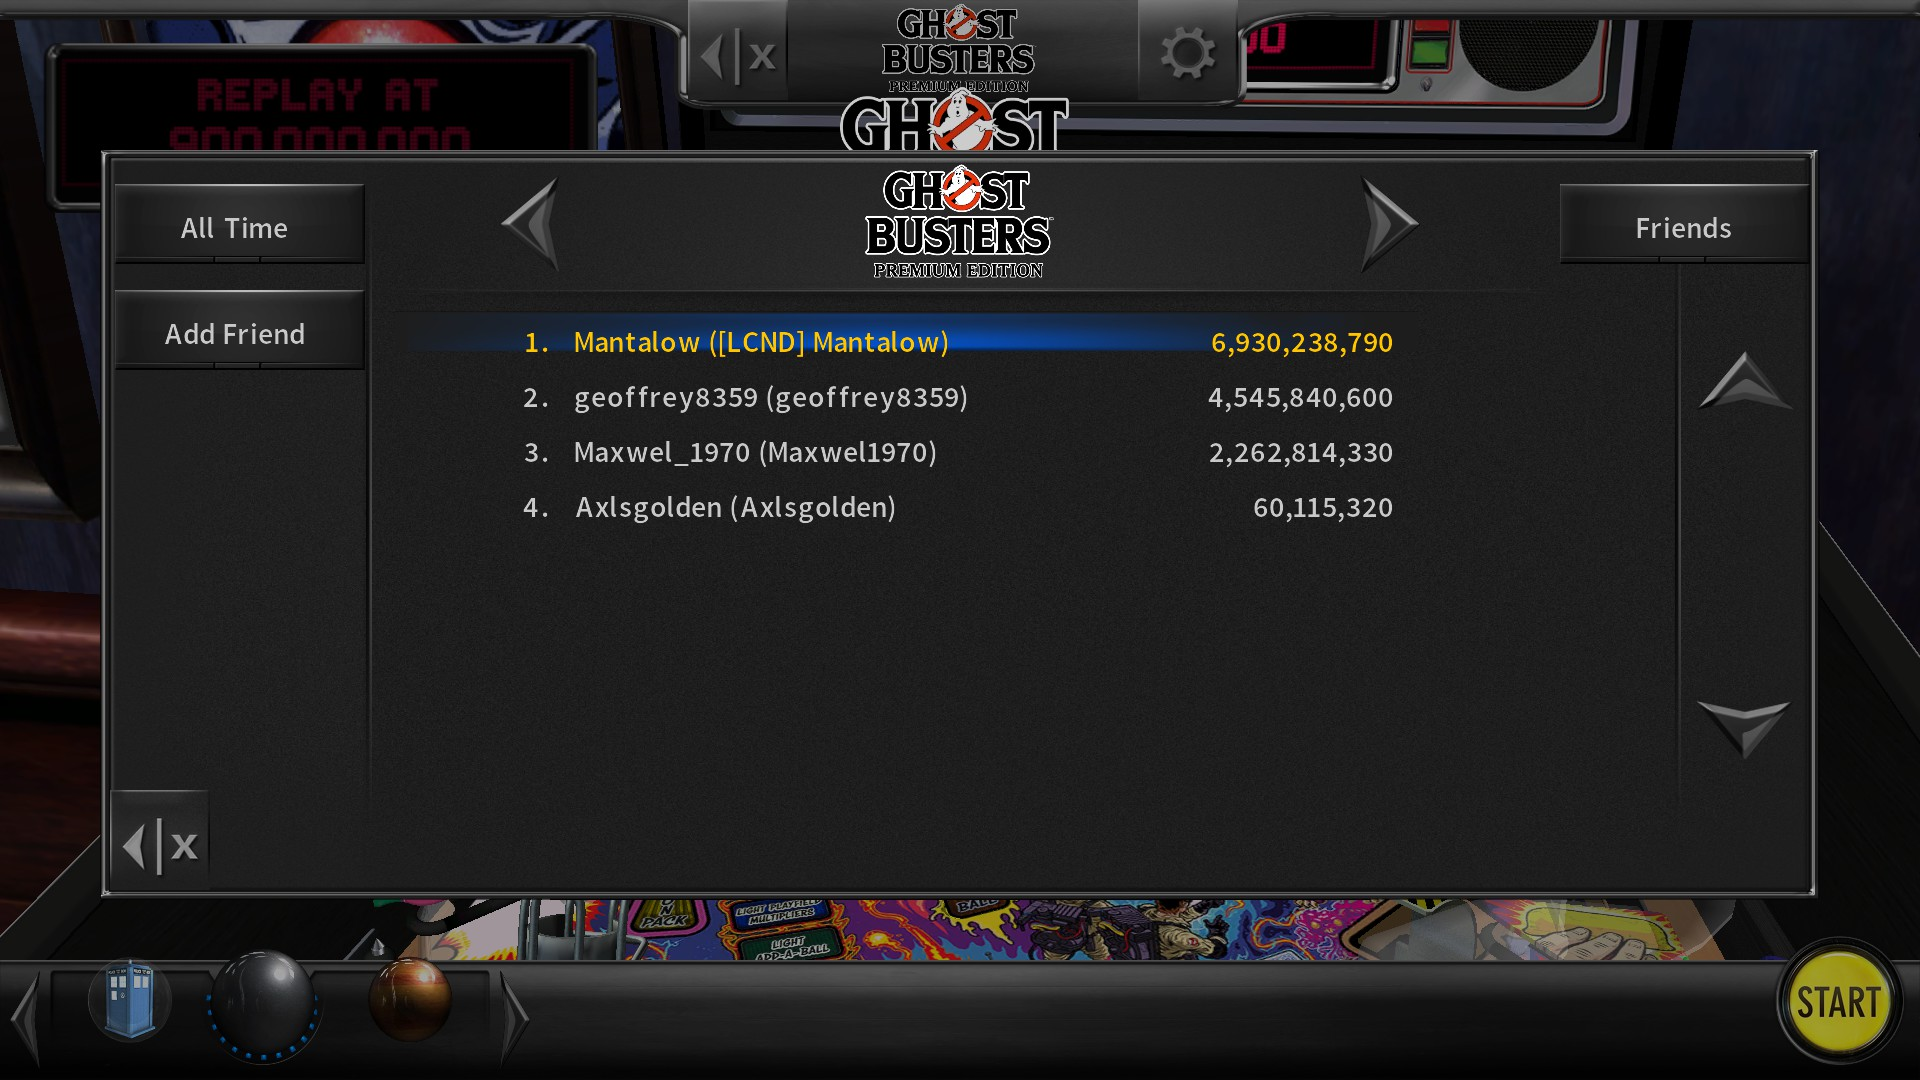 Mantalow: Pinball Arcade: Ghost Busters (PC) 6,930,238,790 points on 2017-11-26 13:11:19